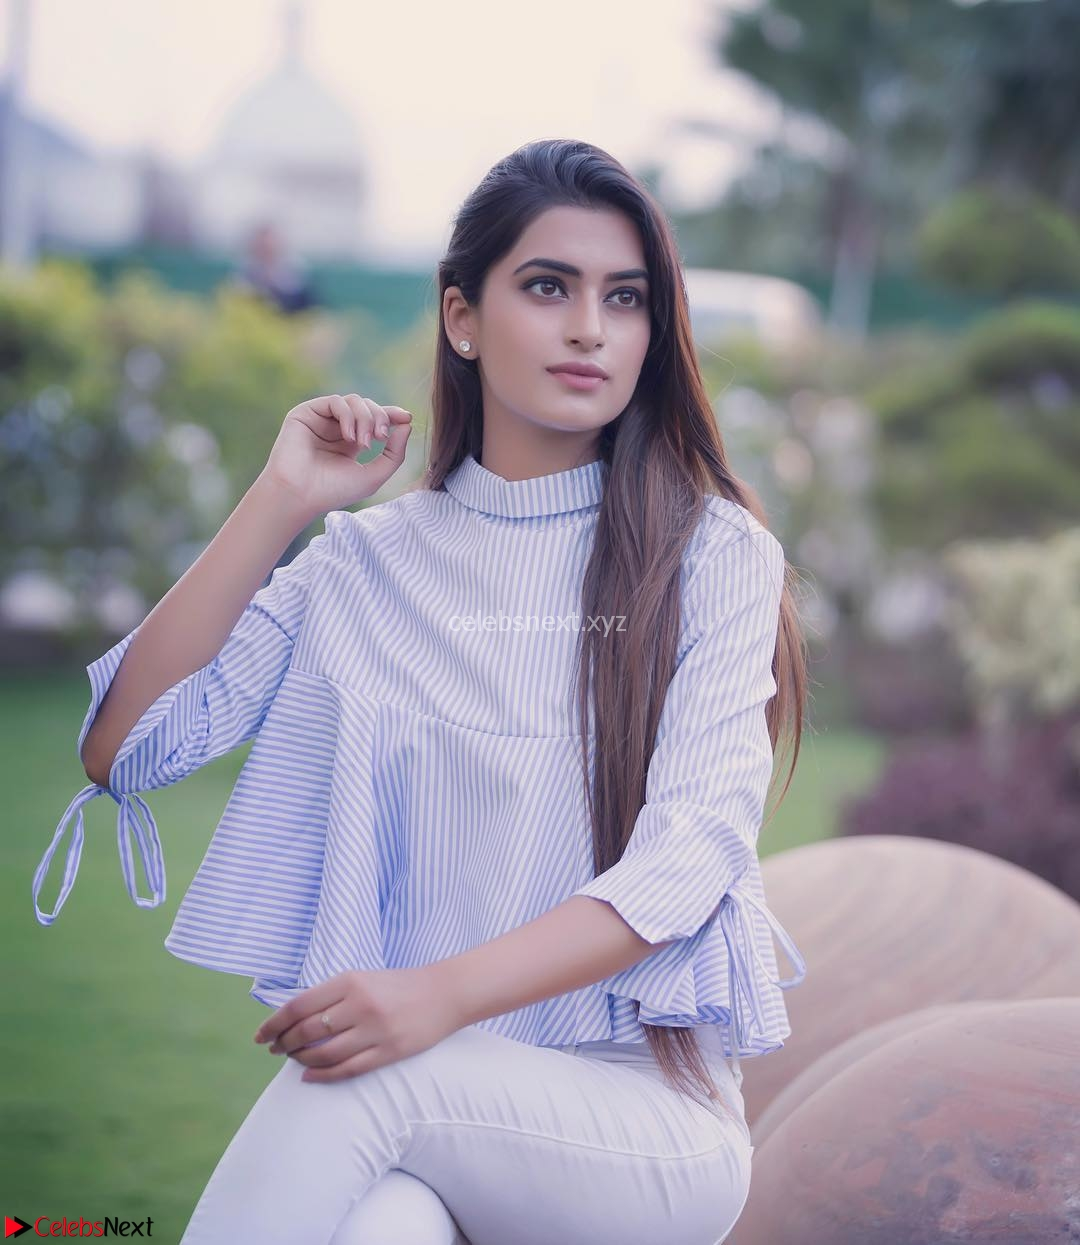 Bhavdeep Kaur Beautiful Cute Indian Blogger Fashion Model Stunning Pics ~ CelebsNext Unseen Exclusive Series